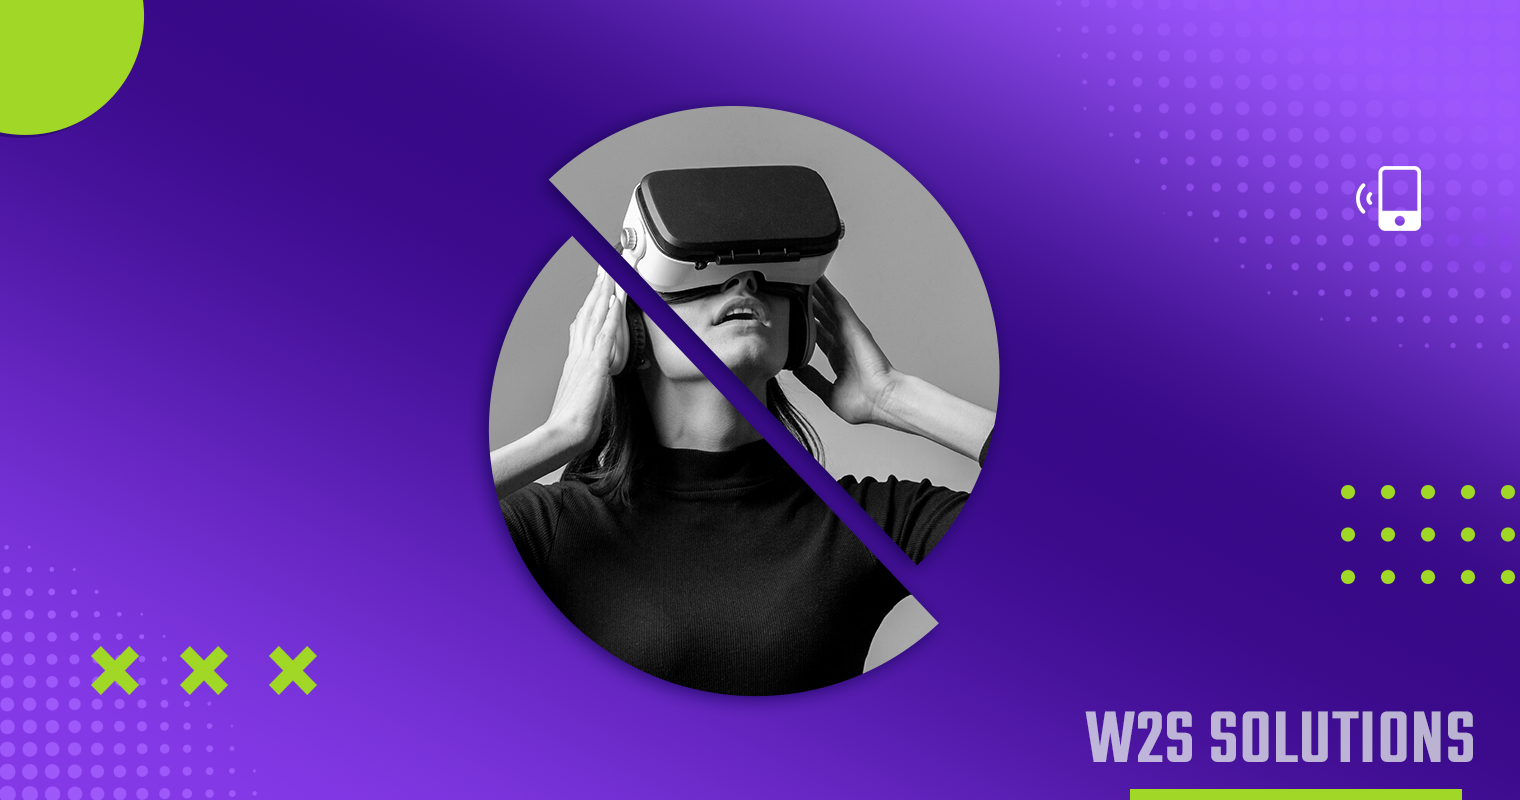 5 Ways VR Will Change Business in the Future